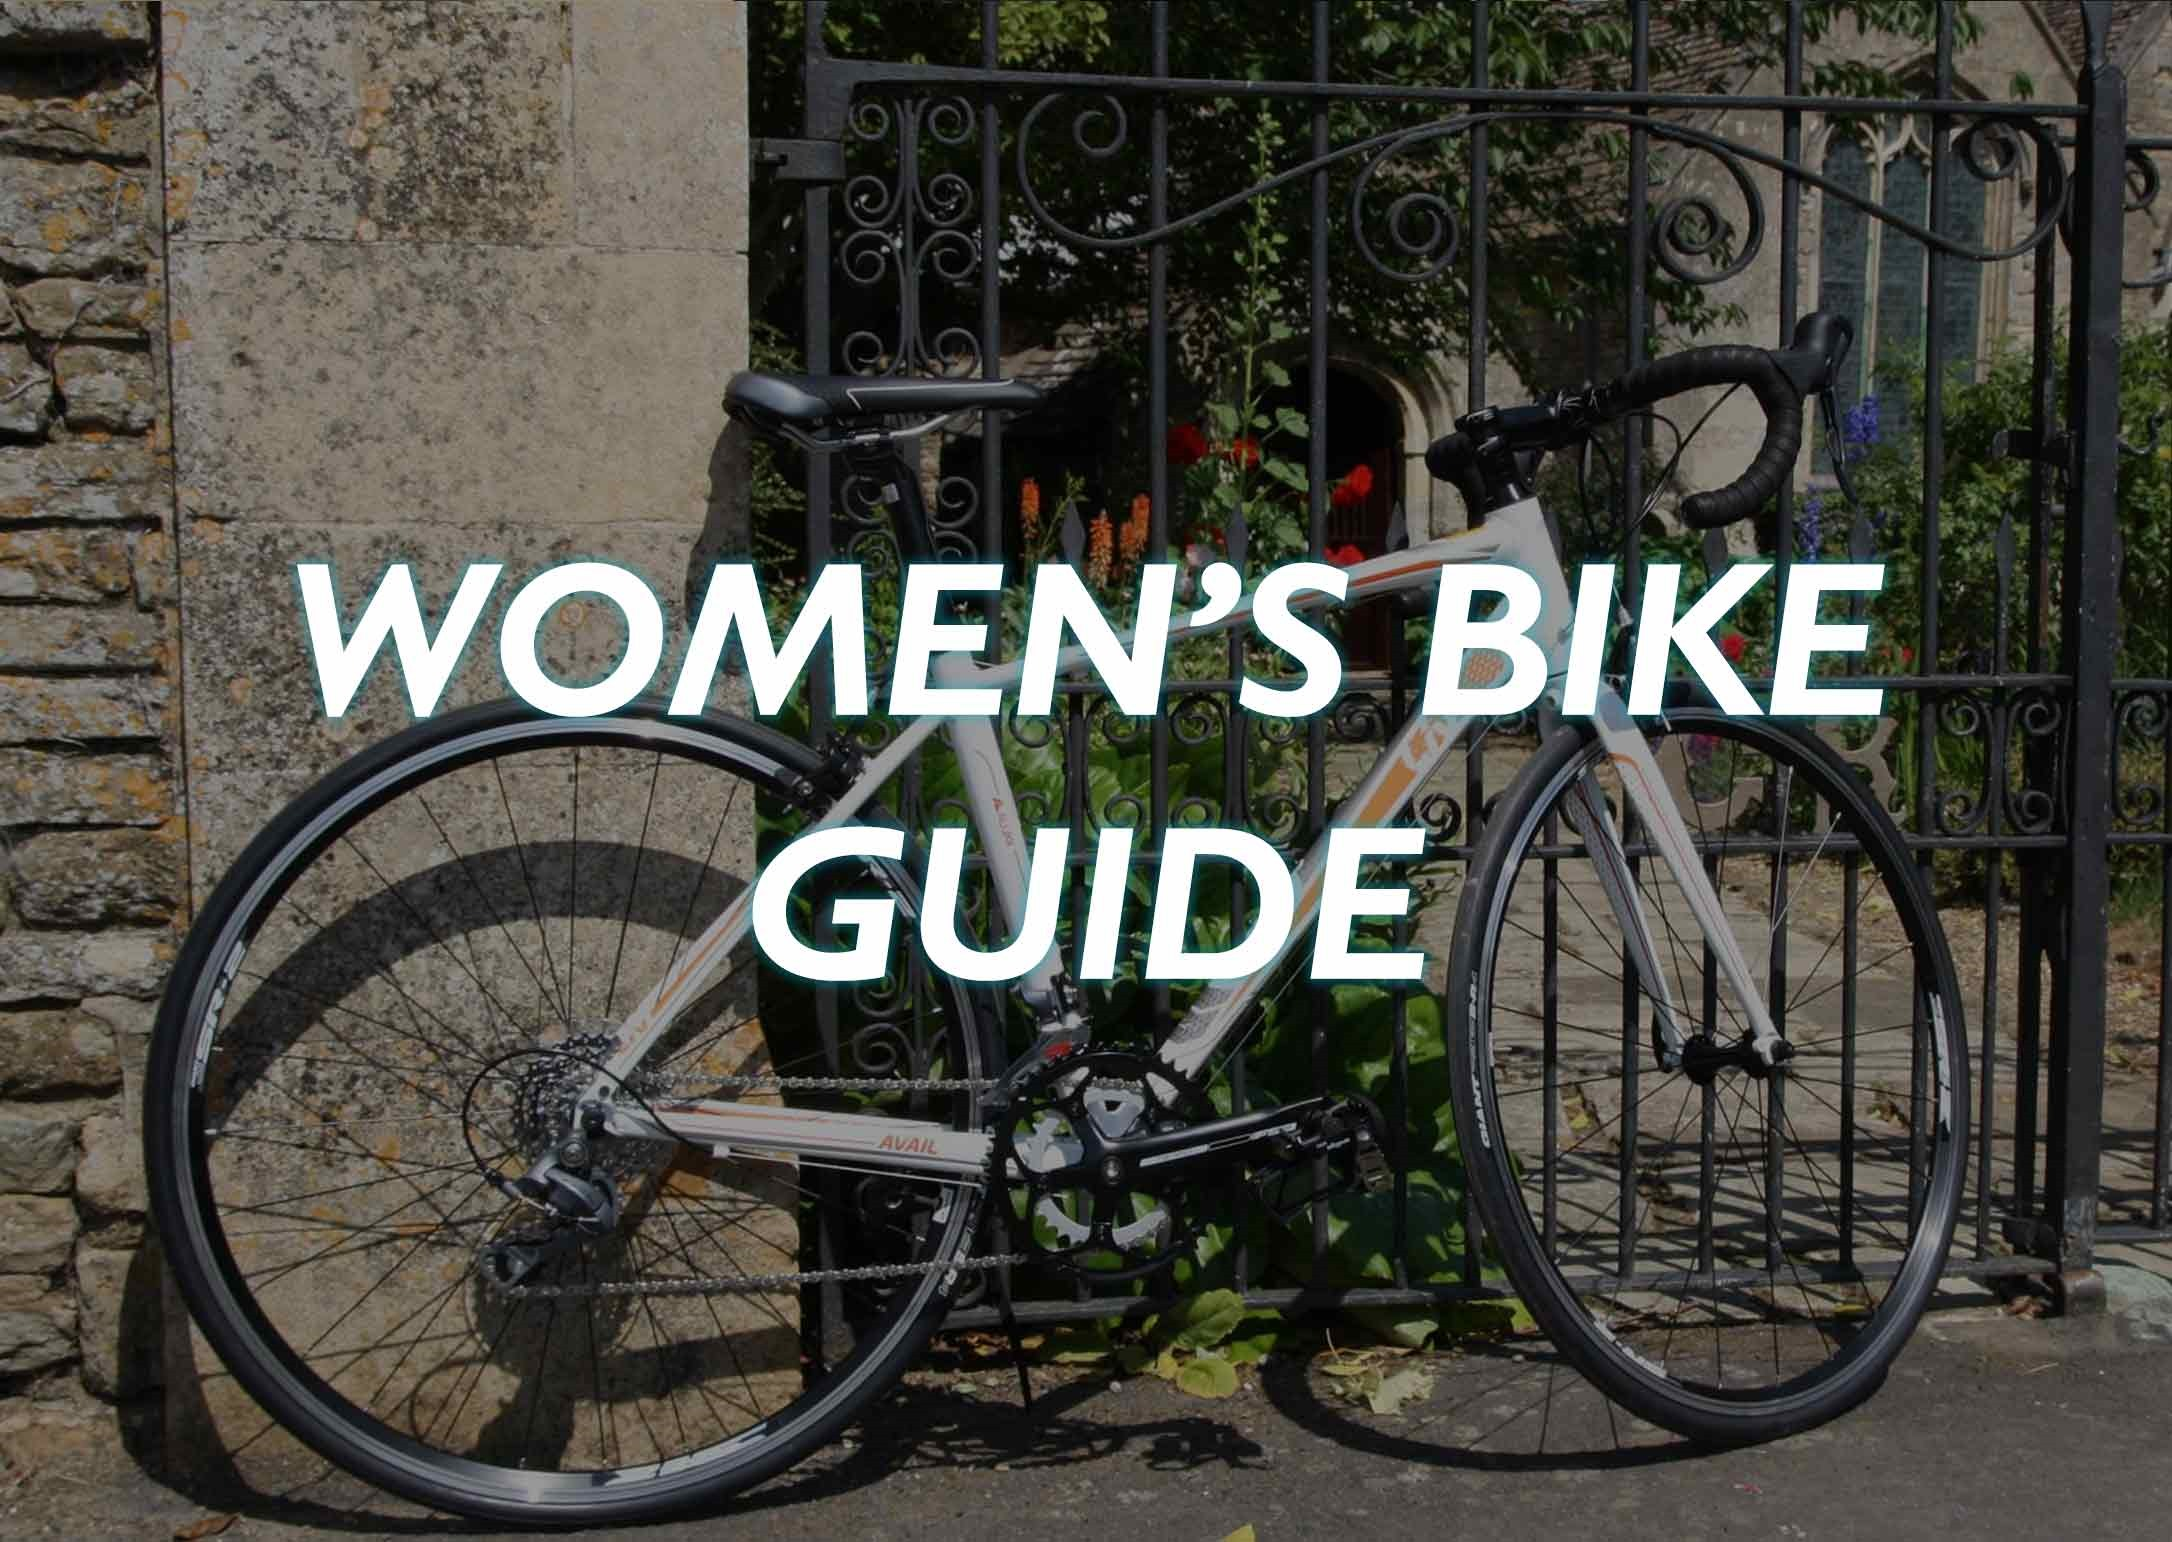 womens-bike-guide-tile